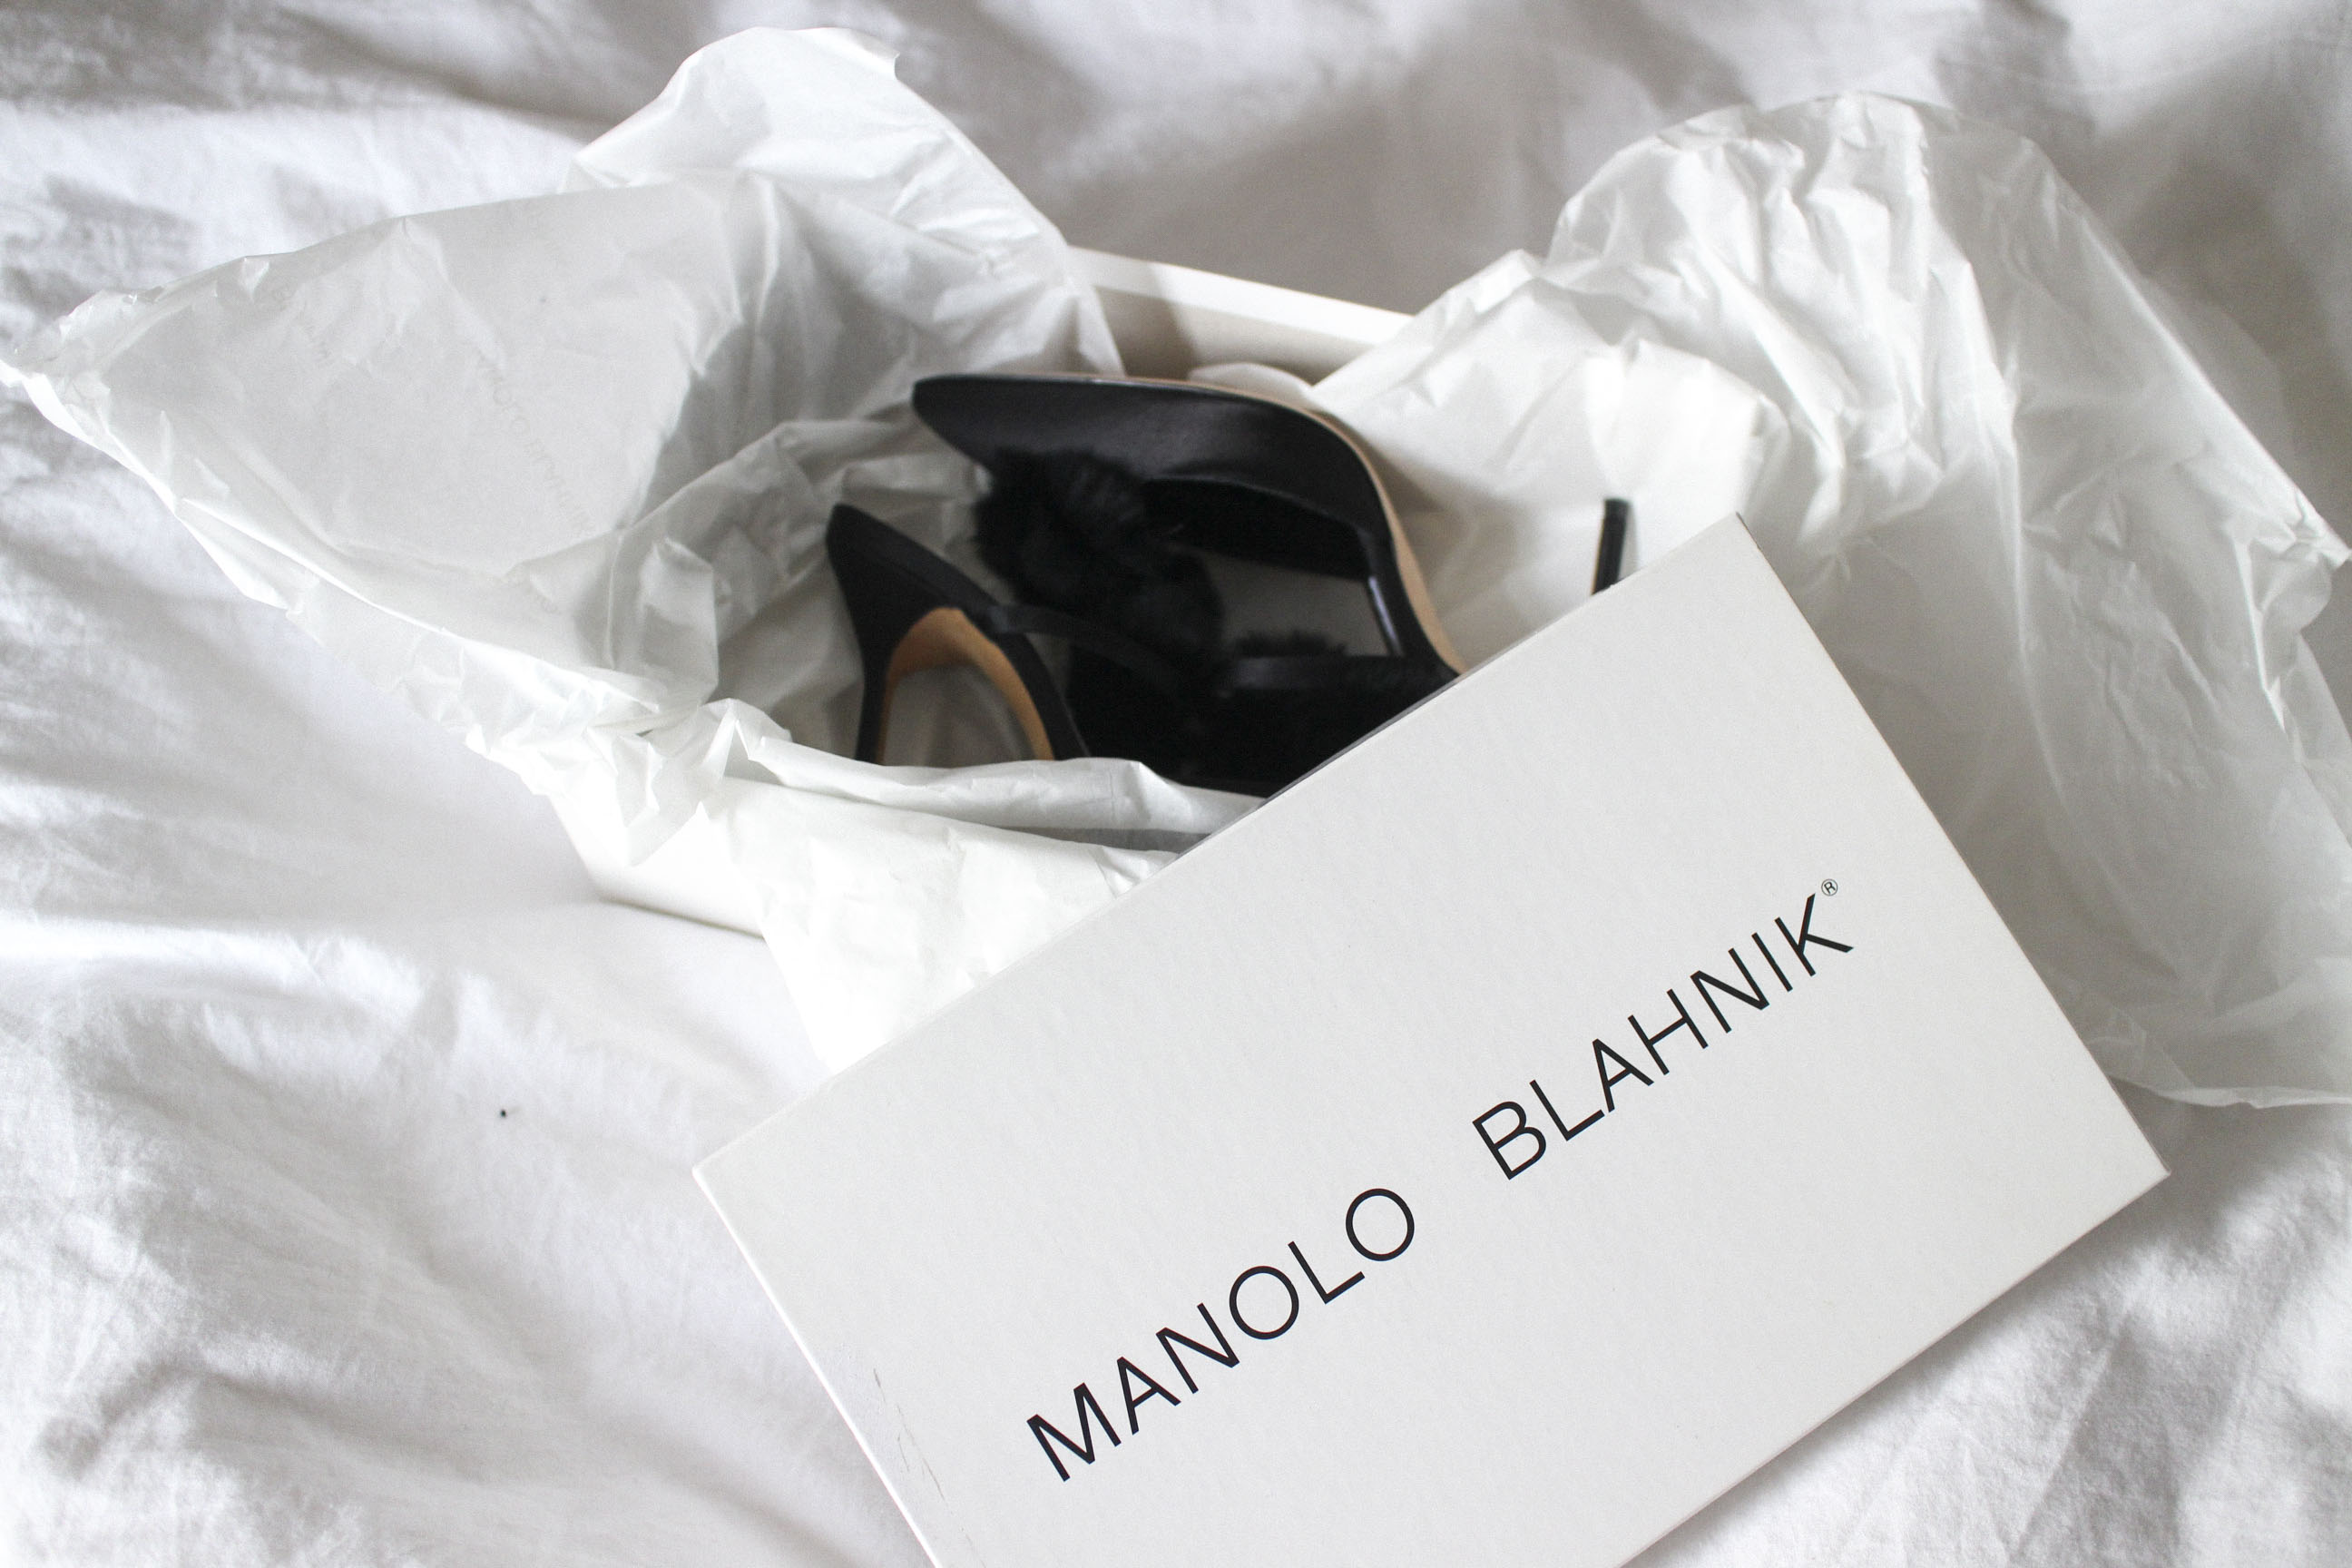 Manolo Blahnik Crespo Satin Pumps